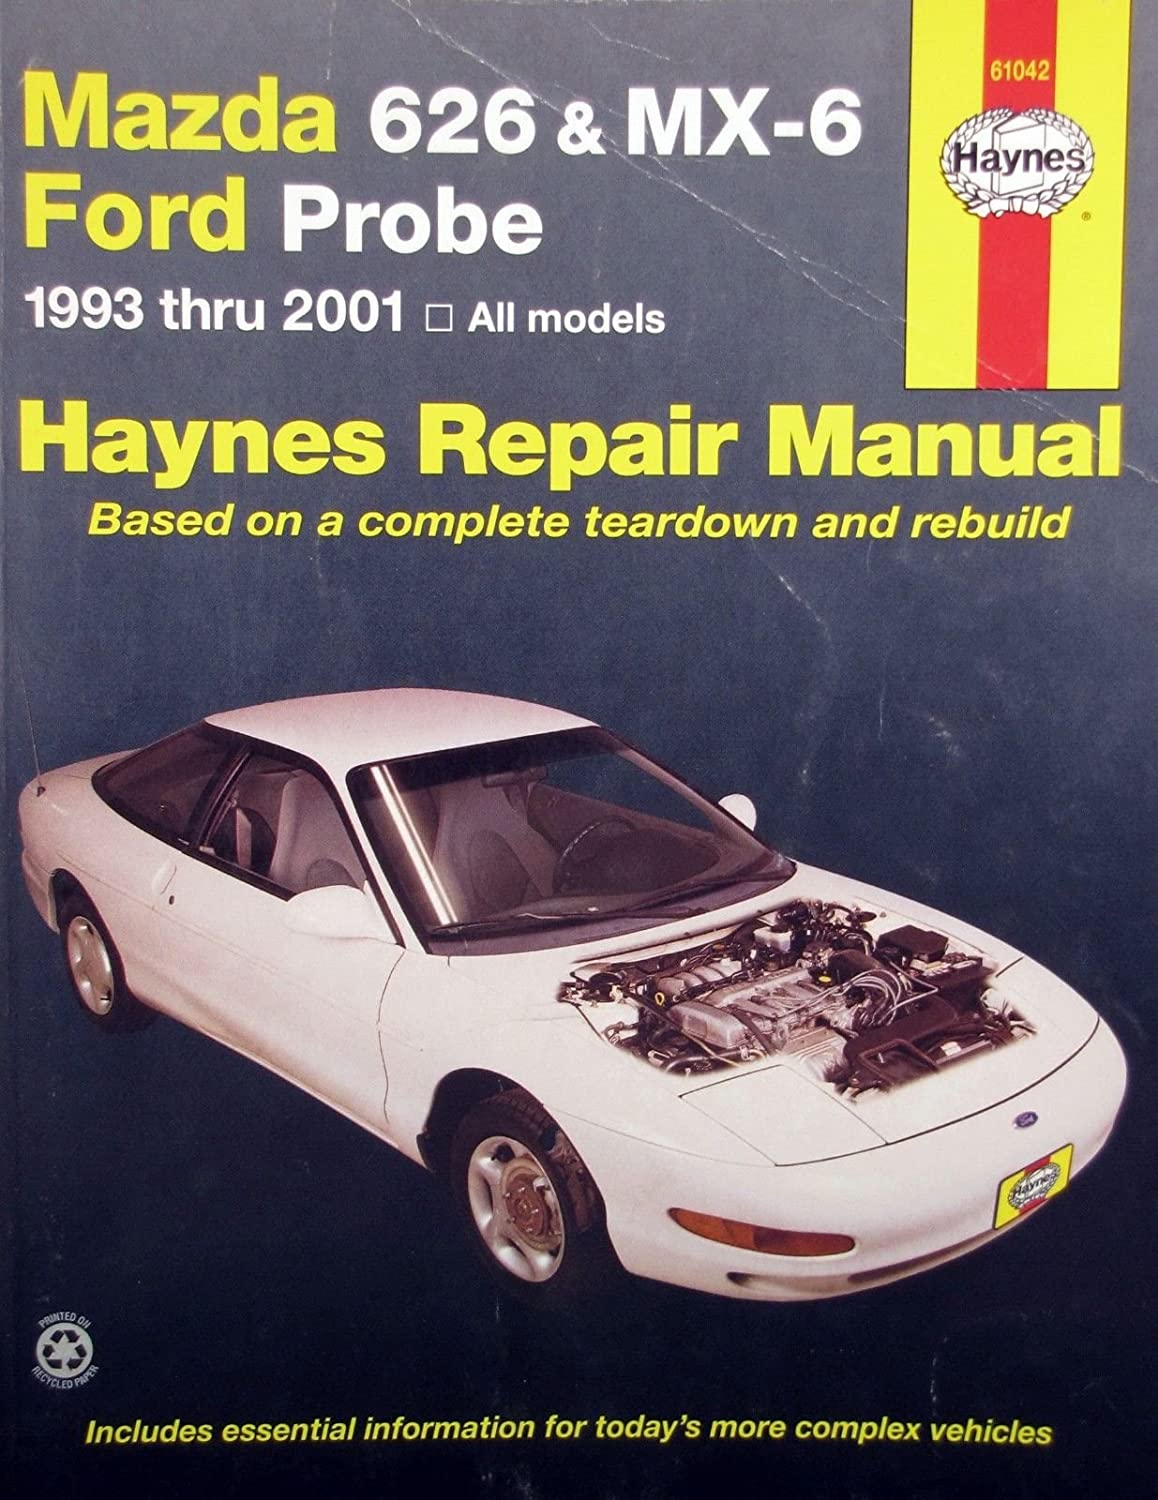 Amazon.com : 1993-2001 Haynes Repair Manual - Mazda 626/MX-6 and Ford Probe  - #61042 : Everything Else